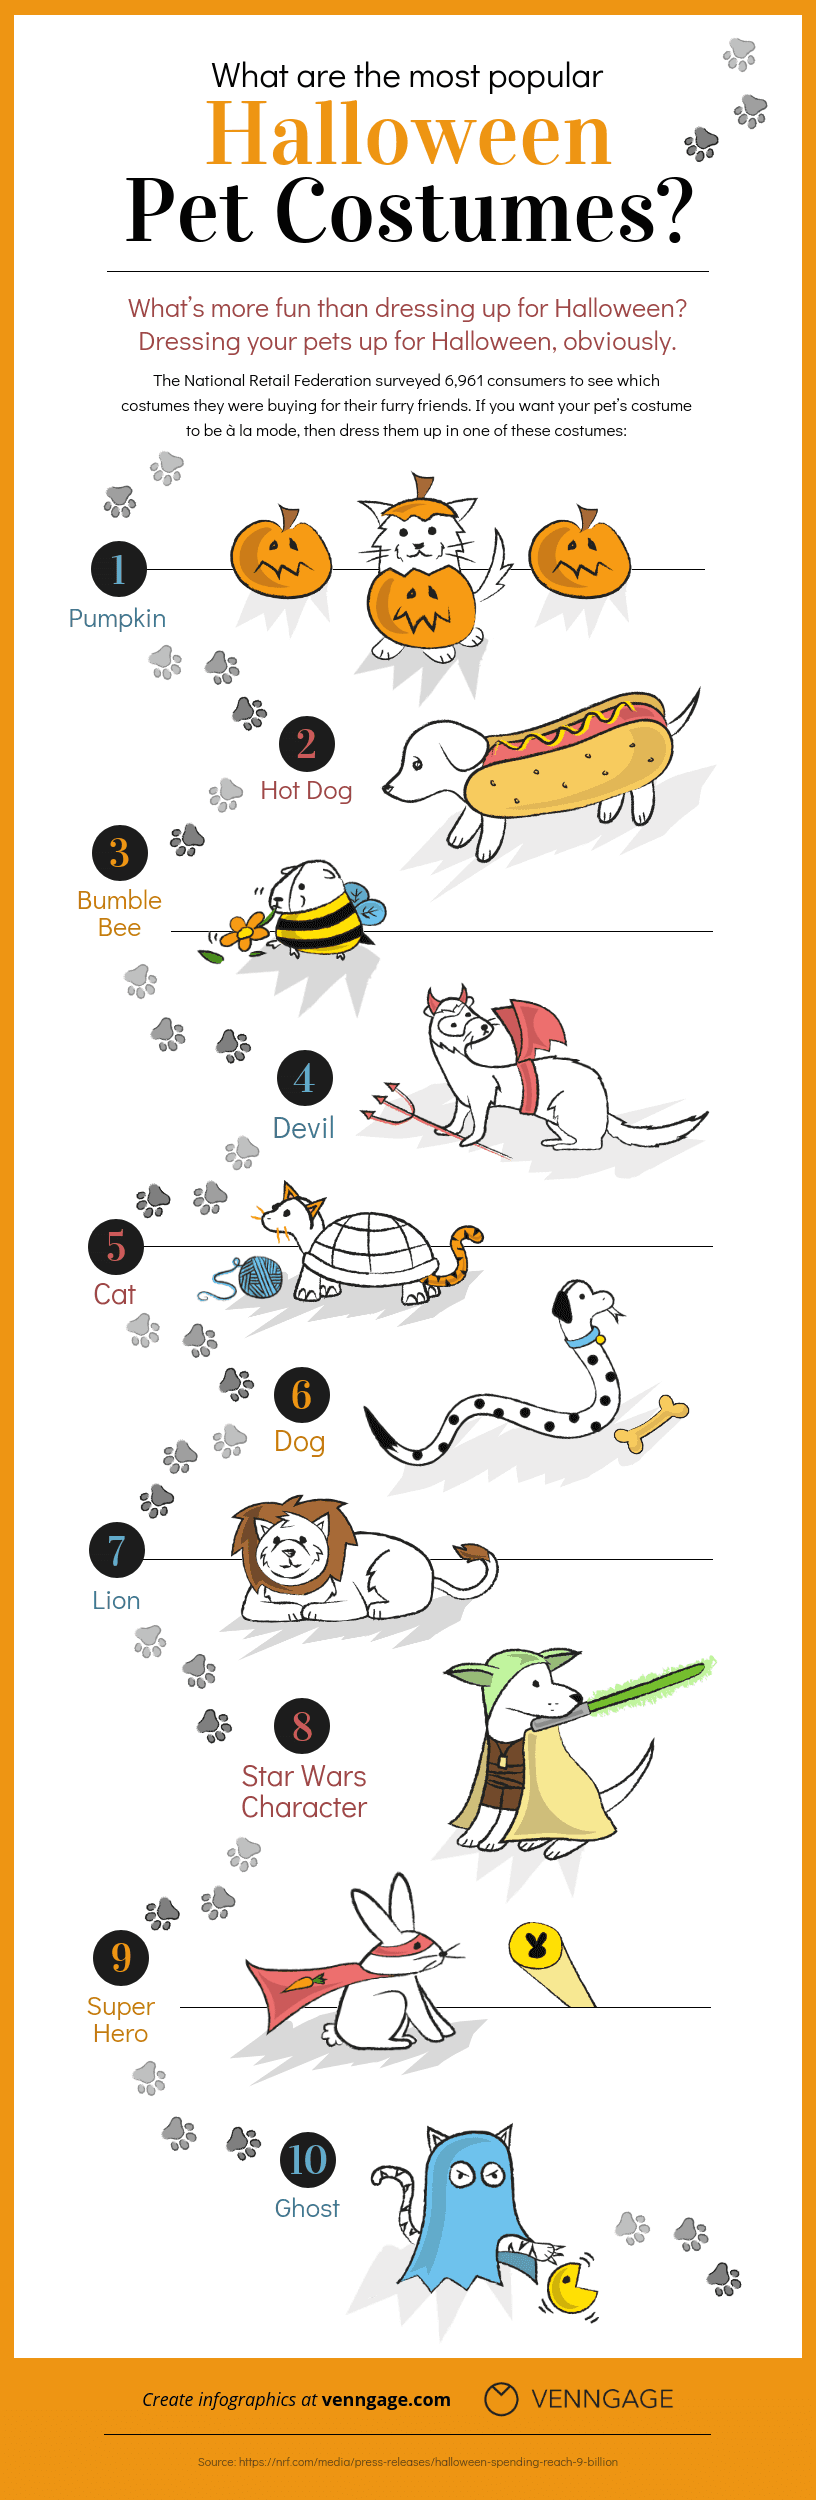 pet costume halloween infographic